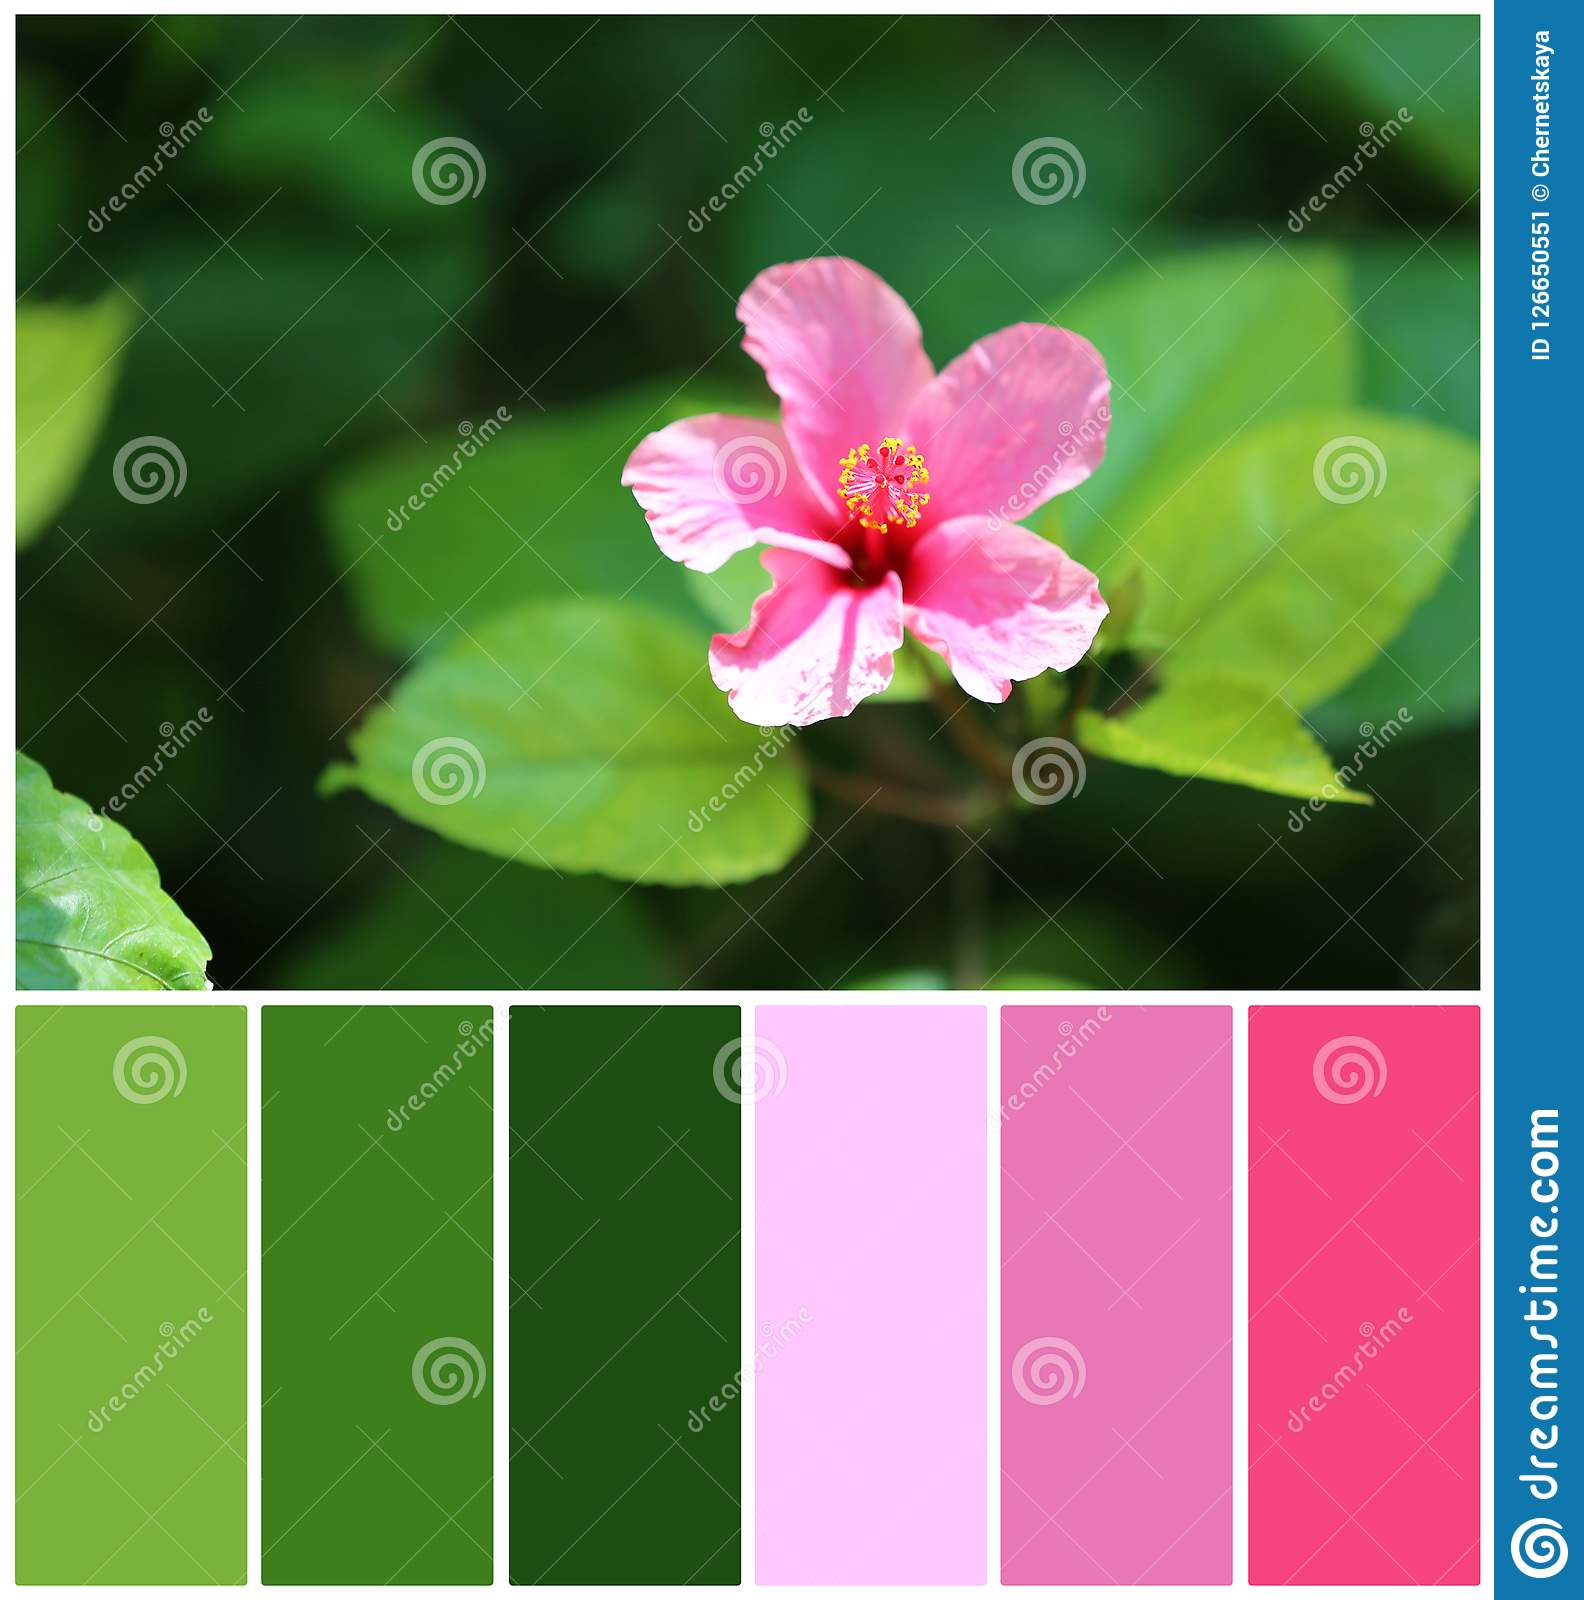 Beautiful flower with green leaves, closeup. Natural color palette for interior or fashion design